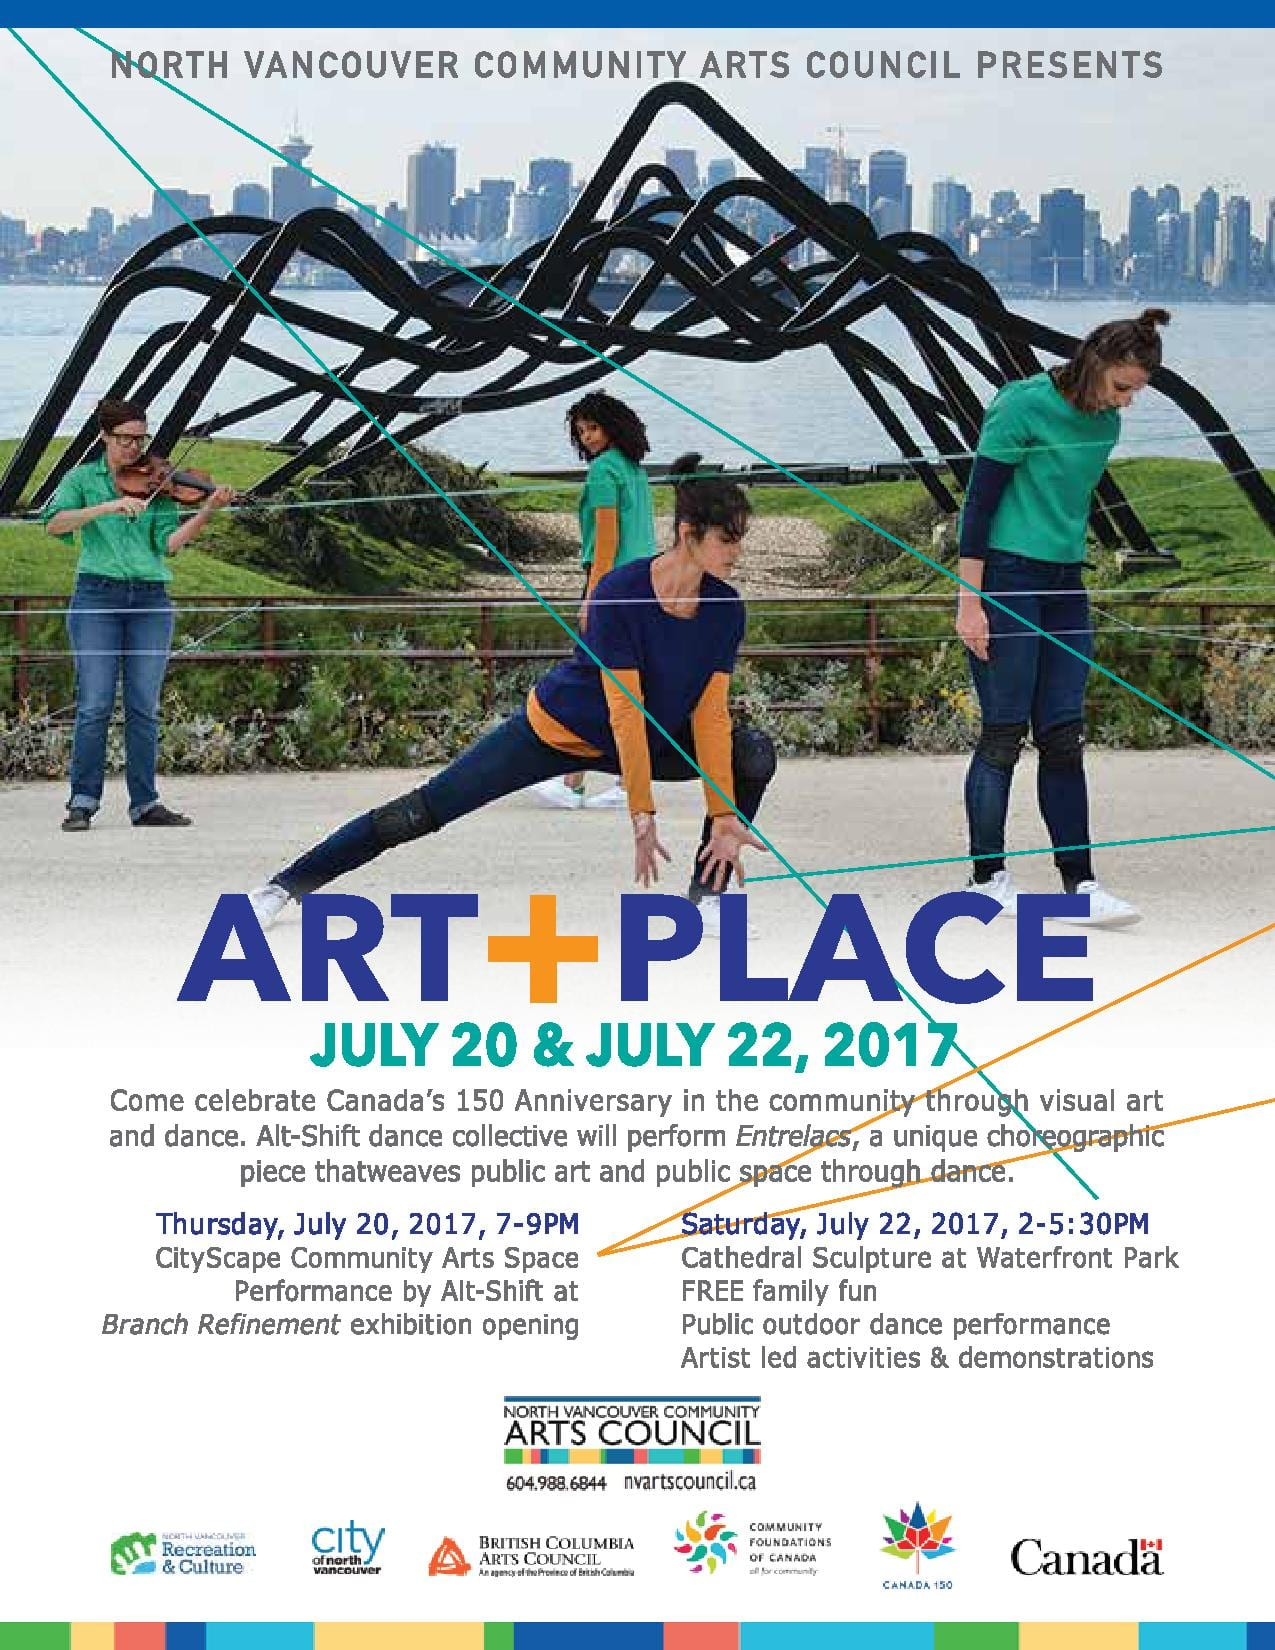 ART + PLACE at Waterfront Park North Vancouver